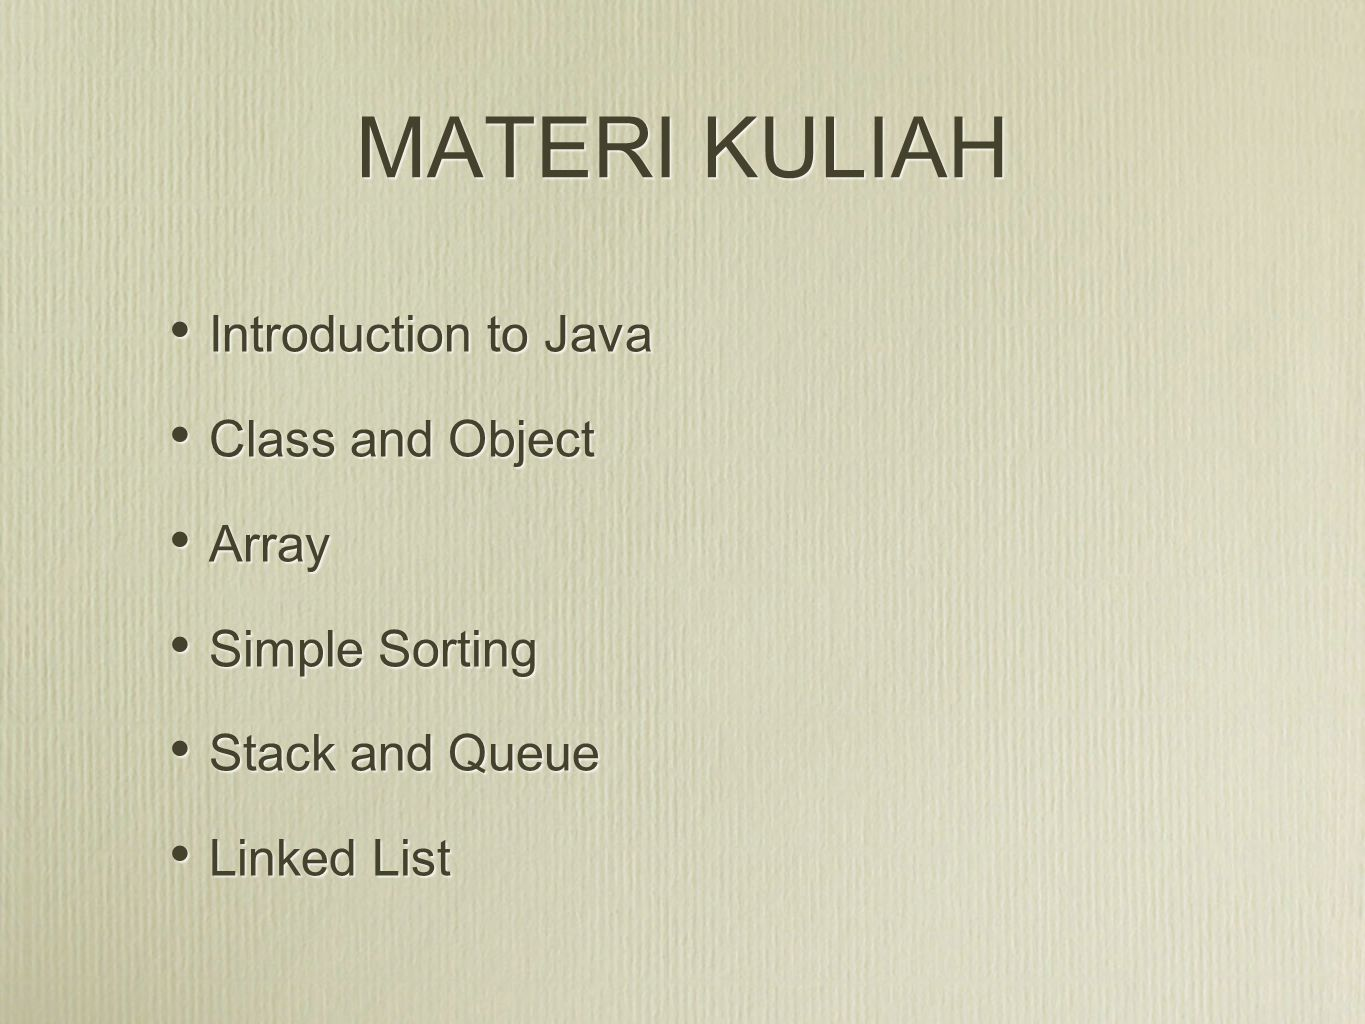 MATERI KULIAH Introduction to Java Class and Object Array